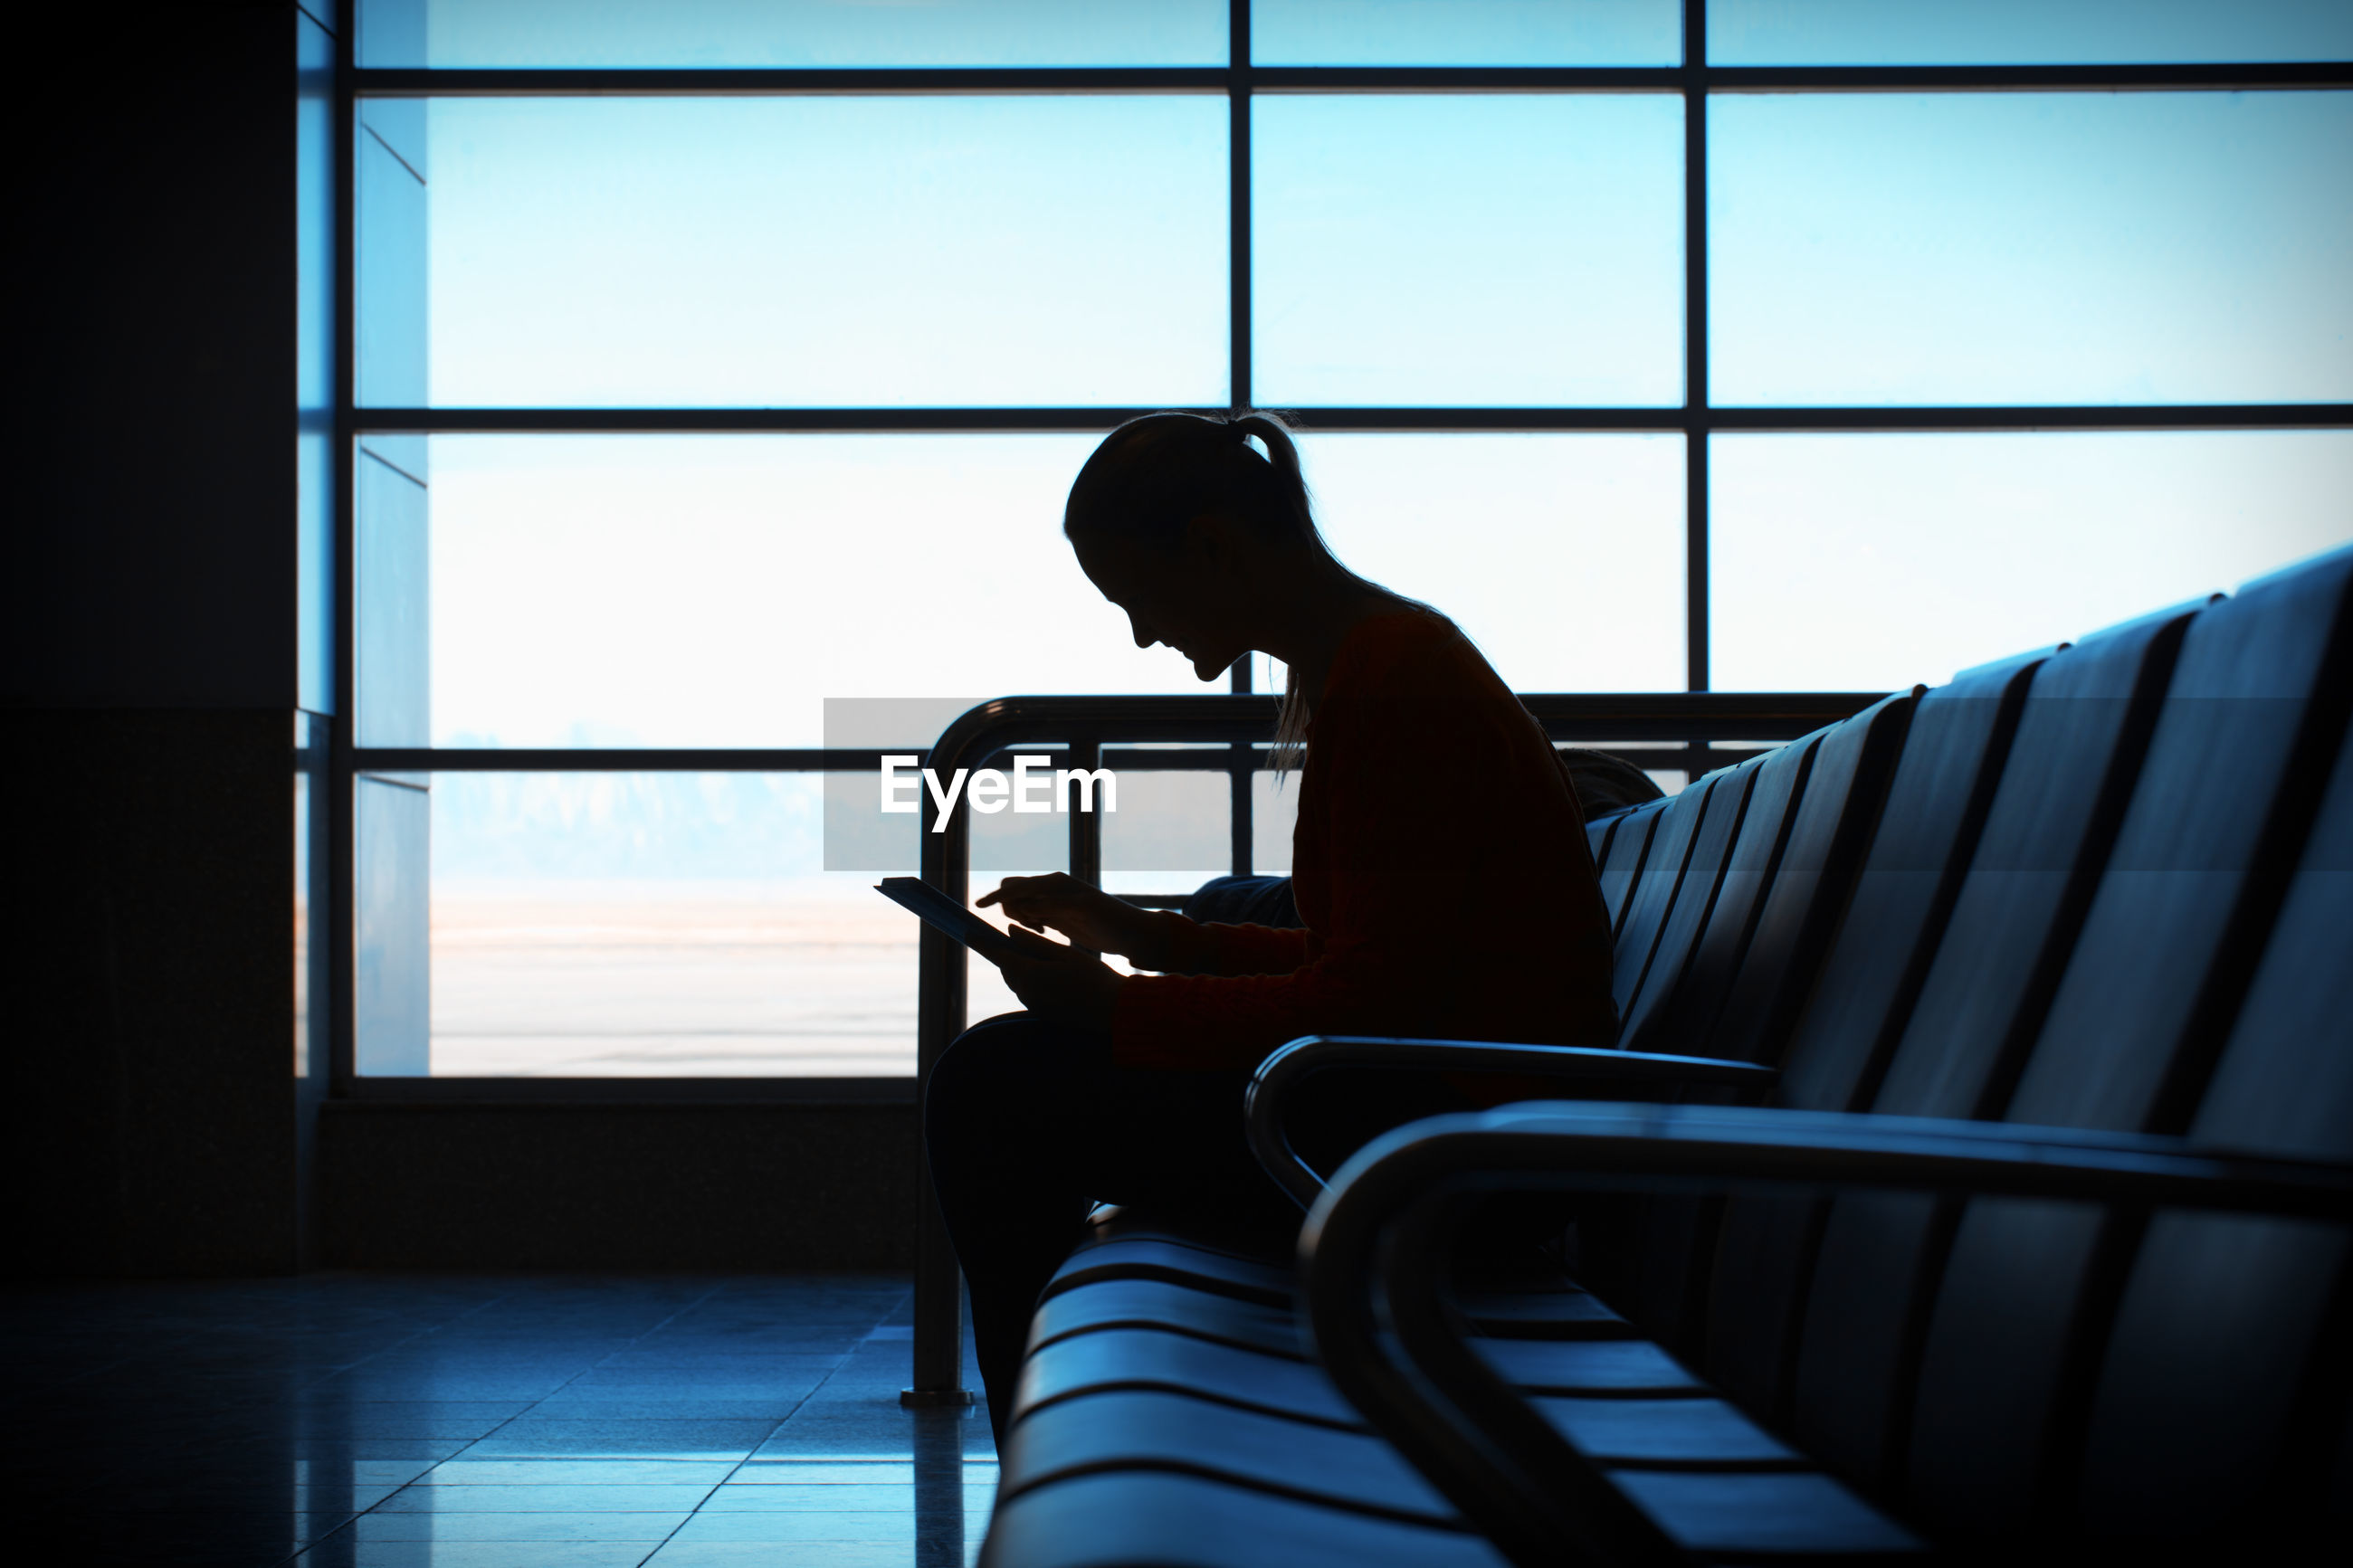 Woman using digital tablet while sitting on chair in airport lobby